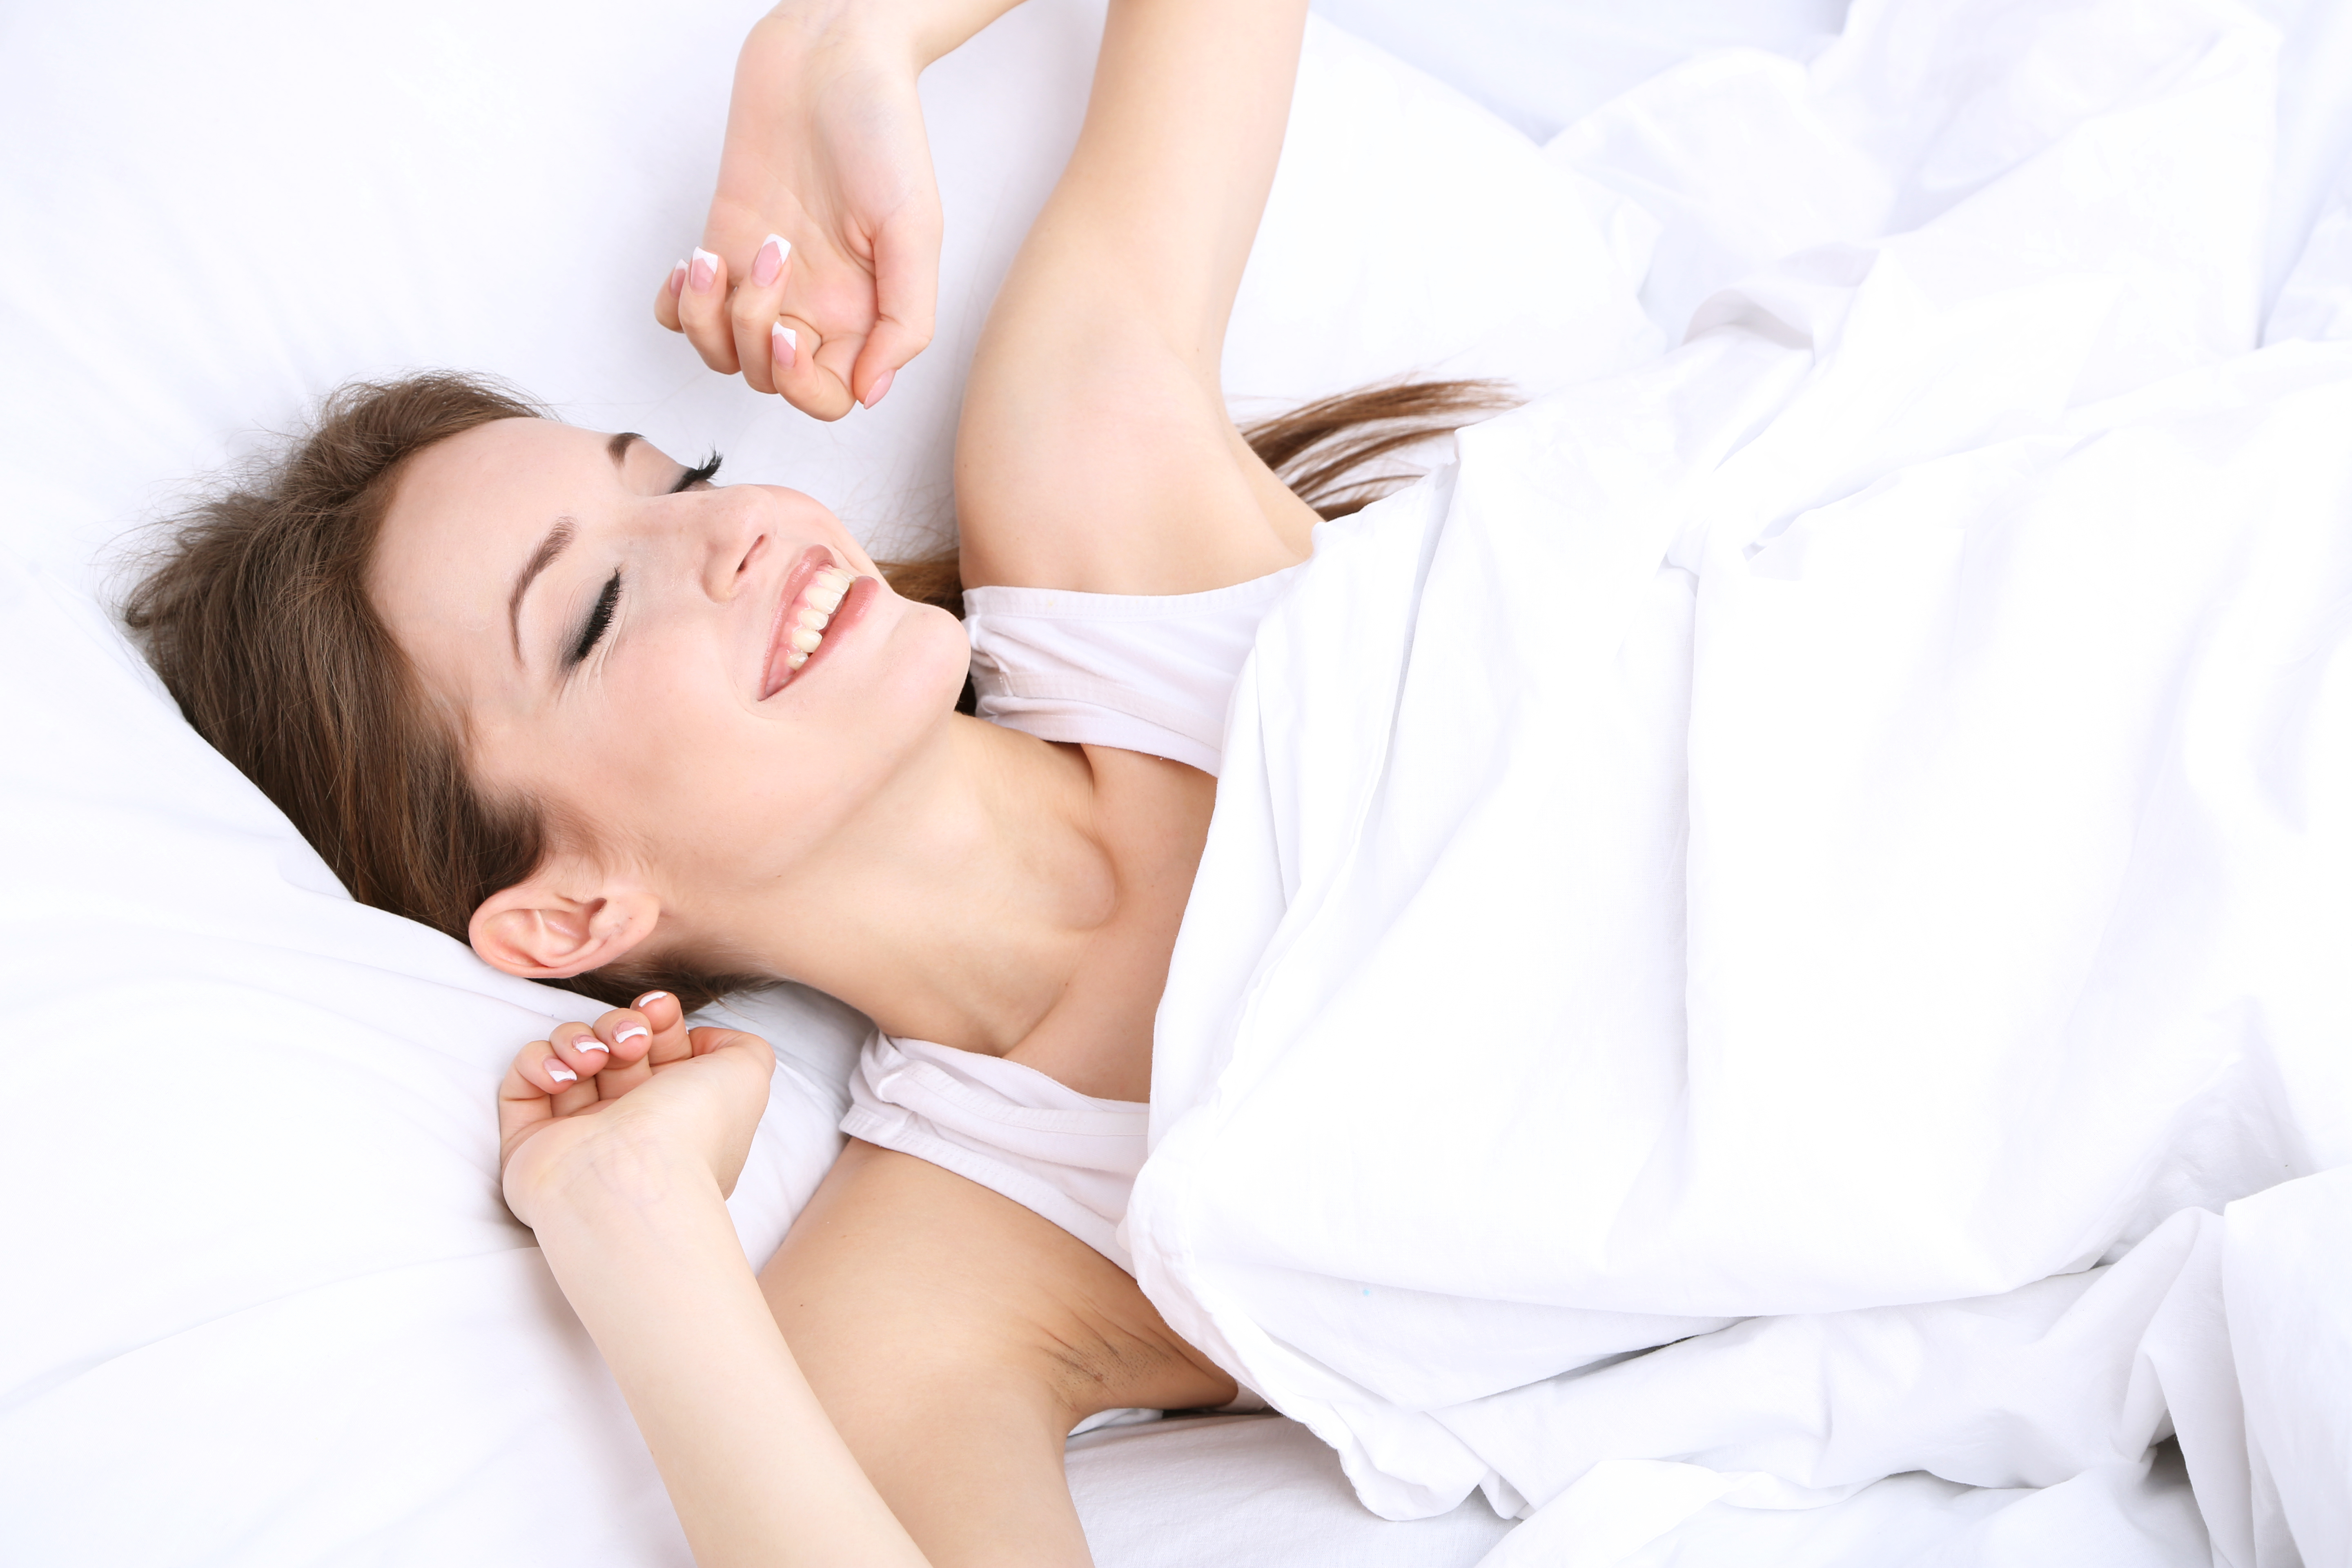 Woman waking up refreshed without back pain thanks to the comfort and support of an orthopaedic mattress